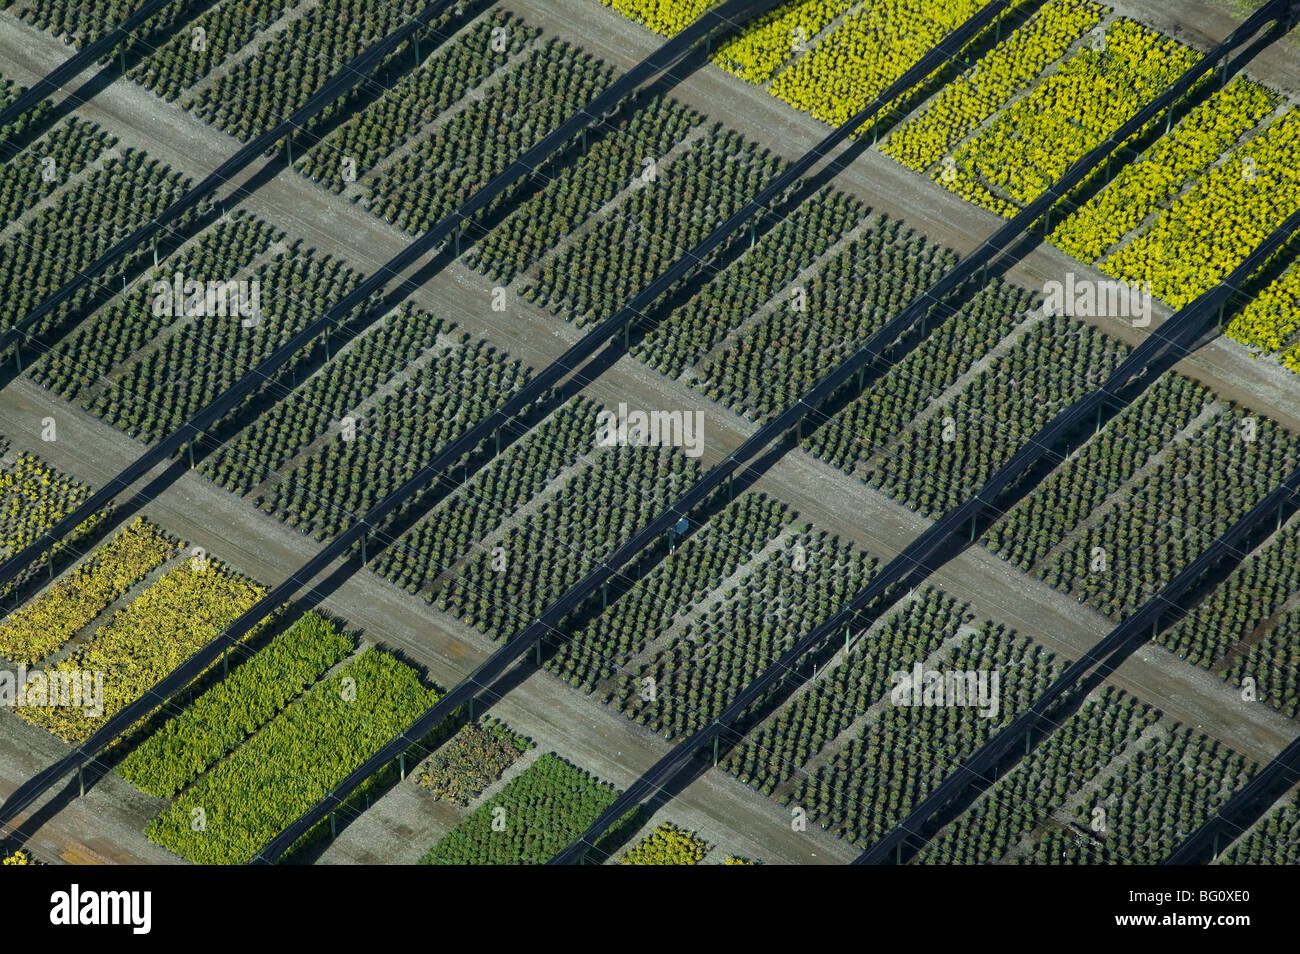 aerial view above nursery Solano county northern California Stock Photo